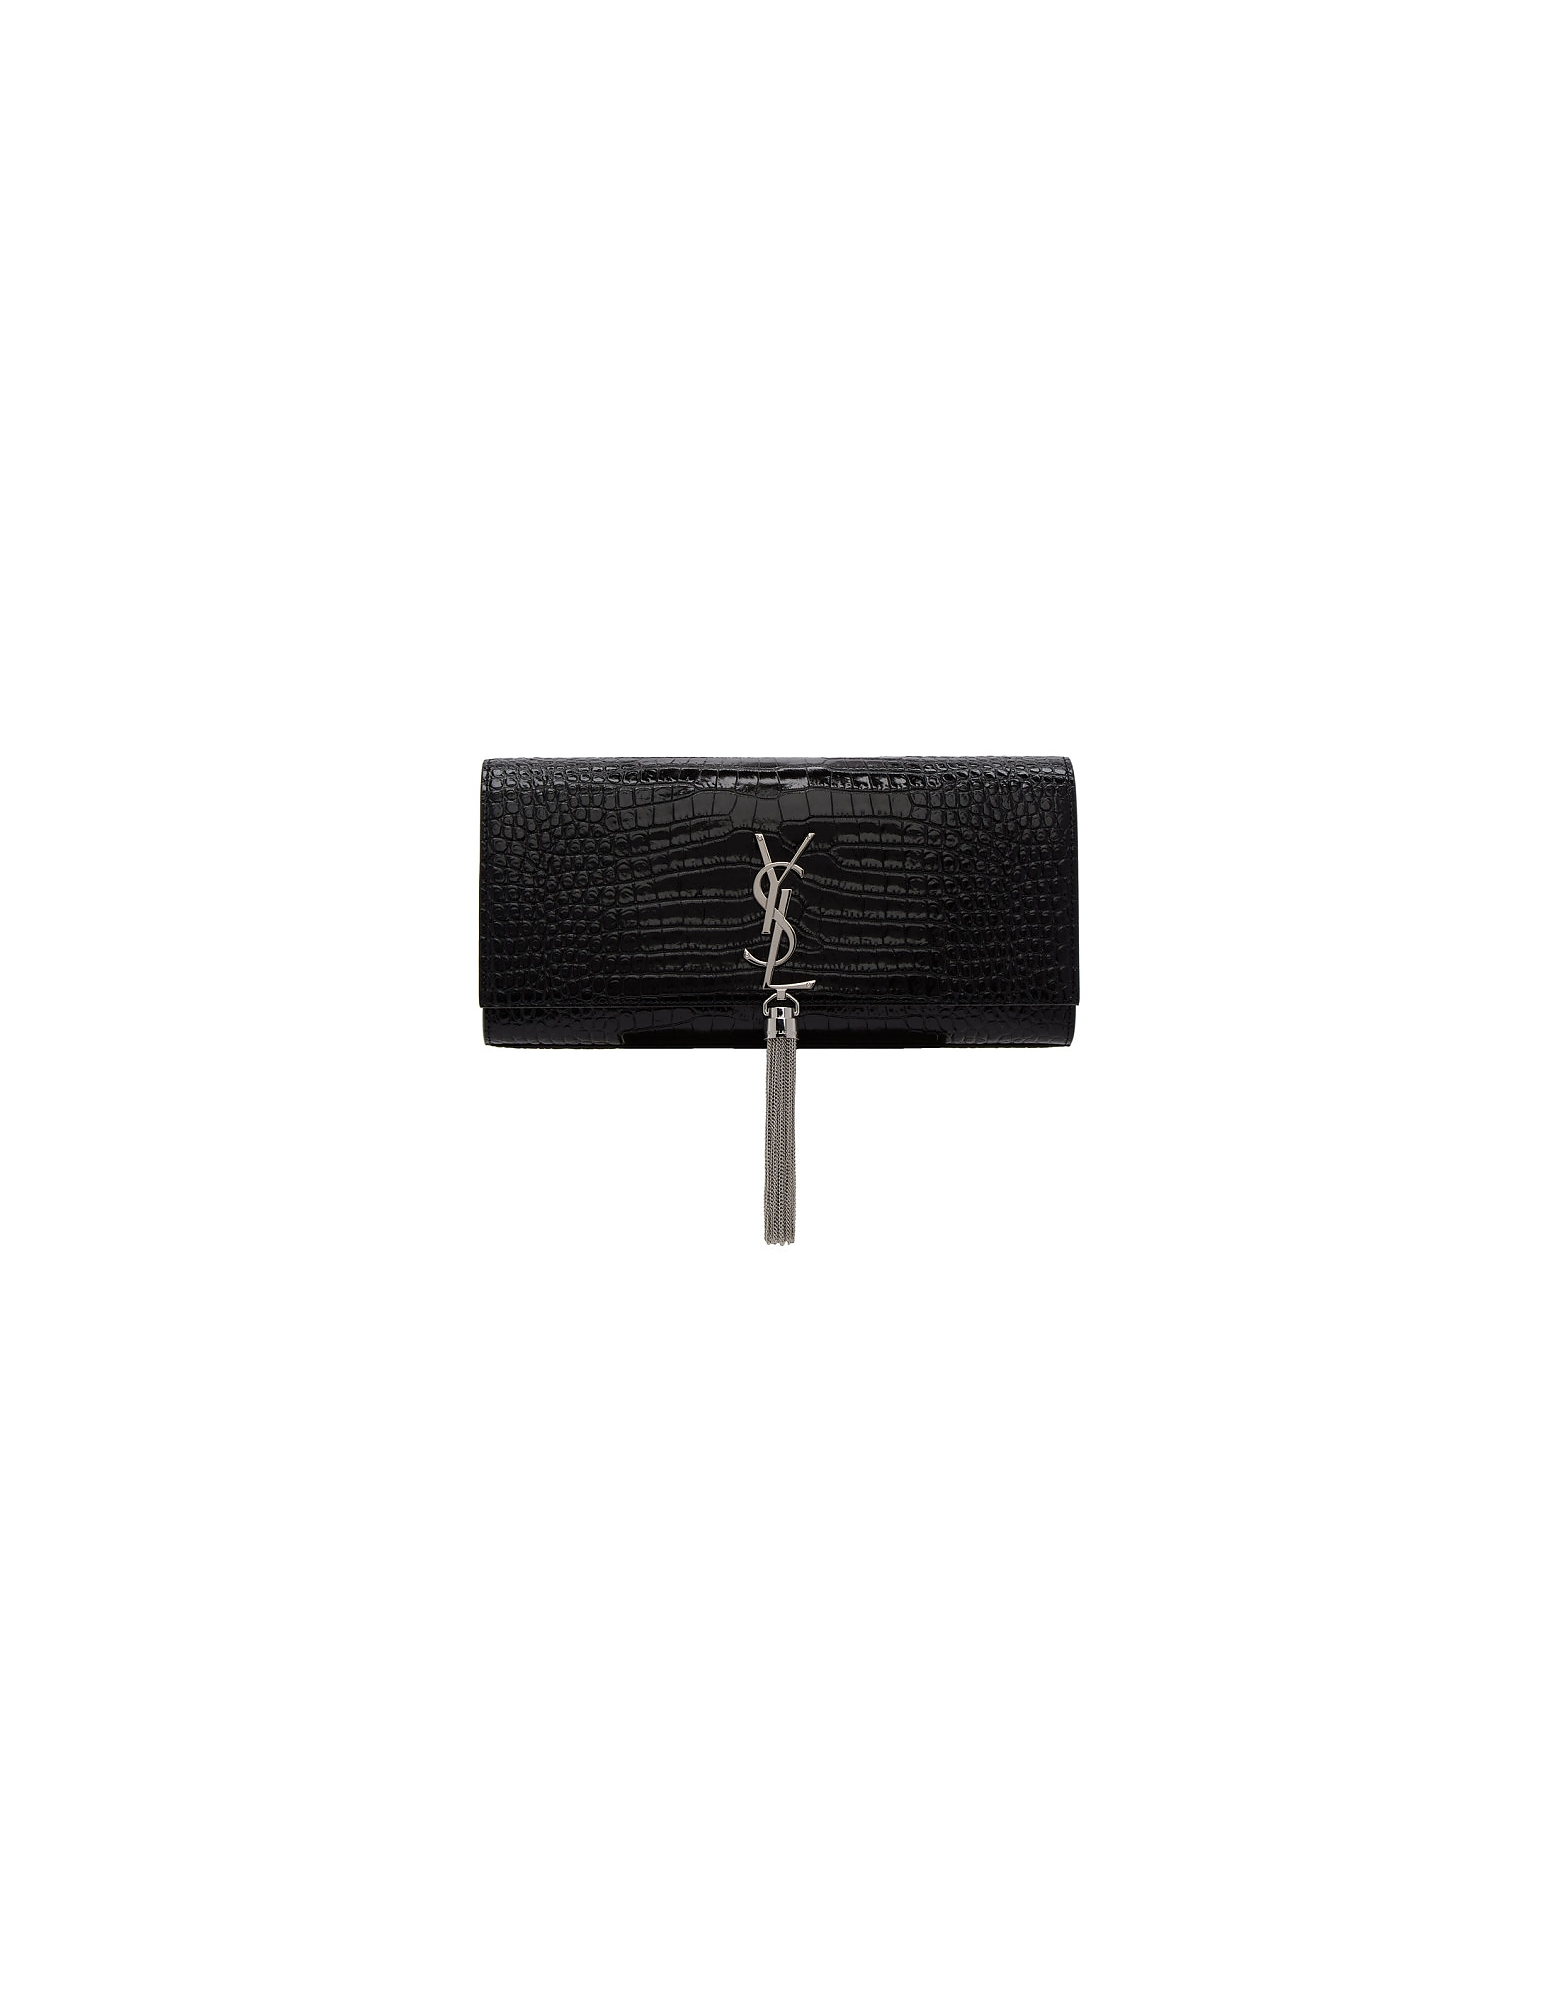 Saint Laurent Designer Handbags, Black Croc Kate Tassel Clutch